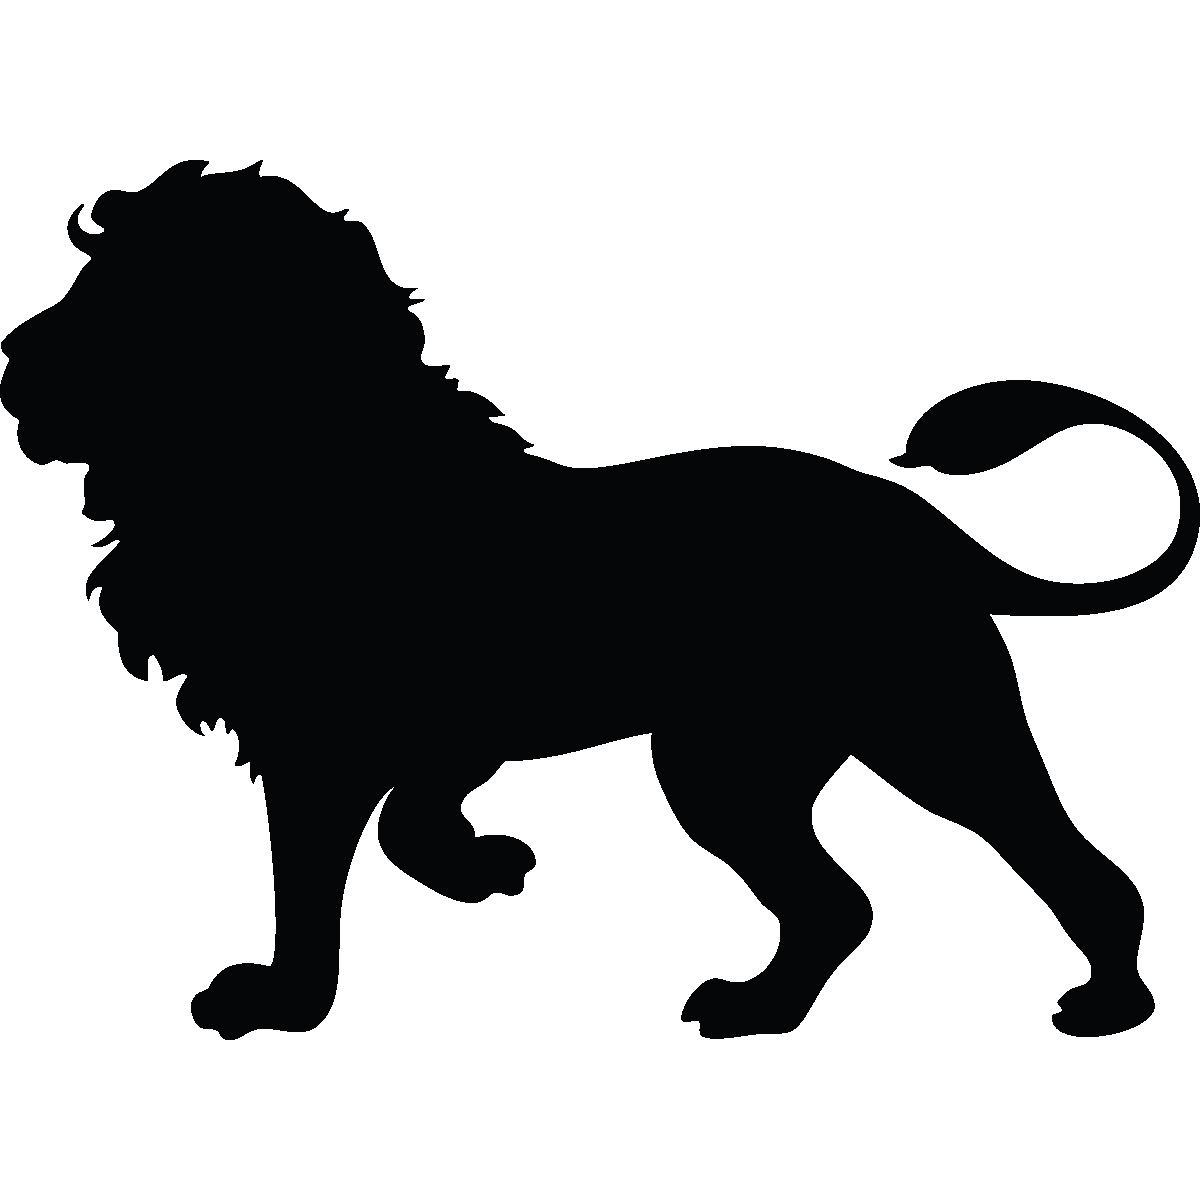 Dog shadow simple clipart image transparent library Sticker Silhouette lion majestueux | Pinterest | Lion silhouette ... image transparent library